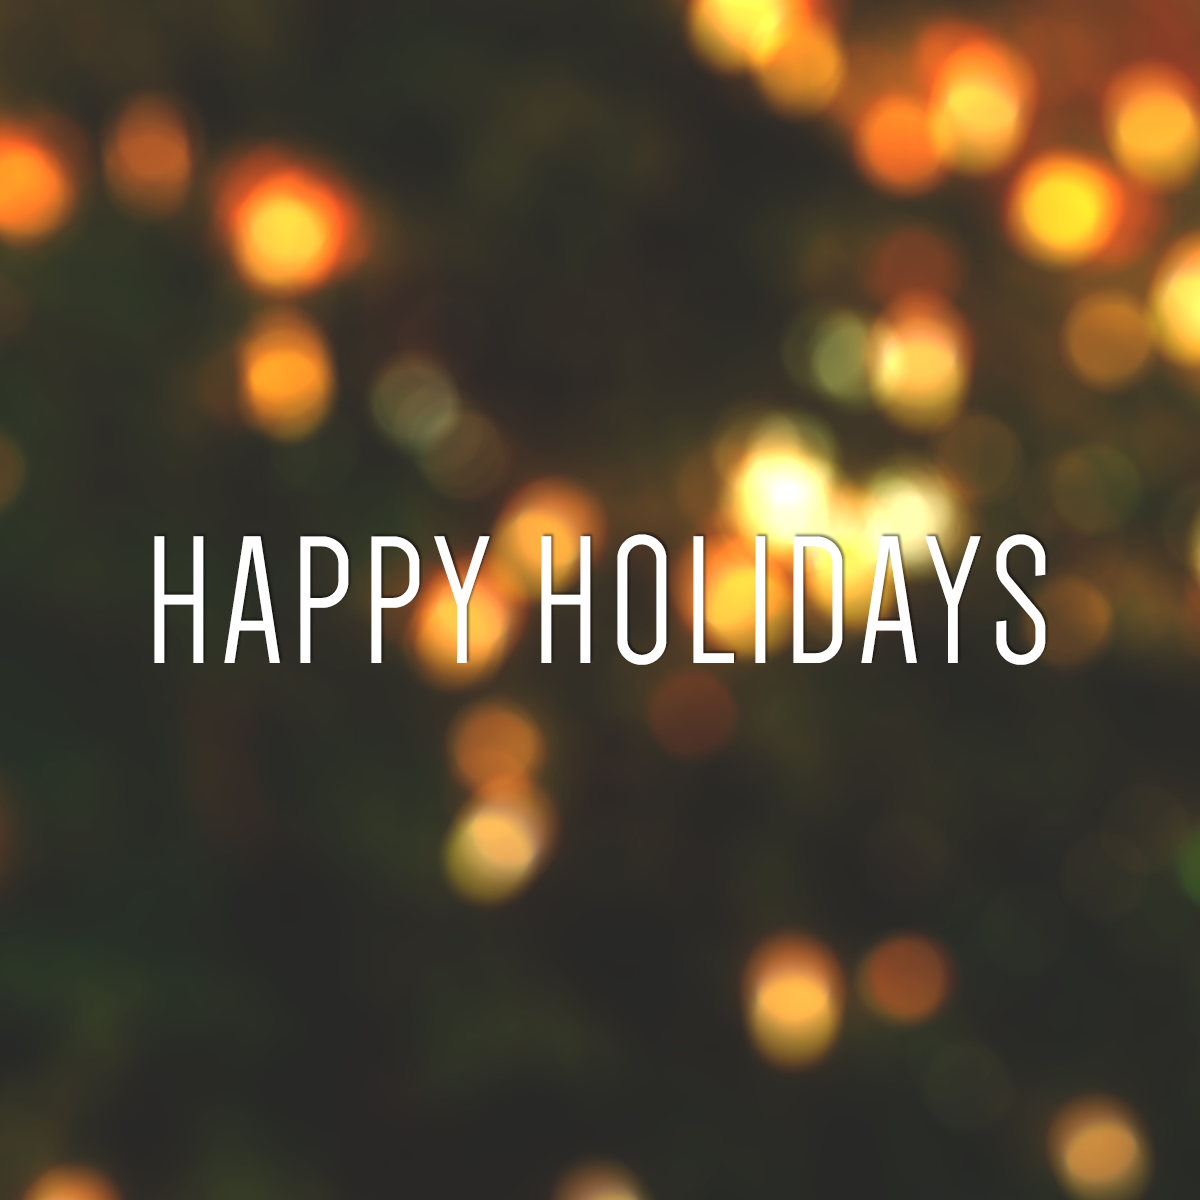 Wishing You All Days Full Of Joy And Happiness This Holiday Season Holiday Joy Joy And Happiness Happy Holiday